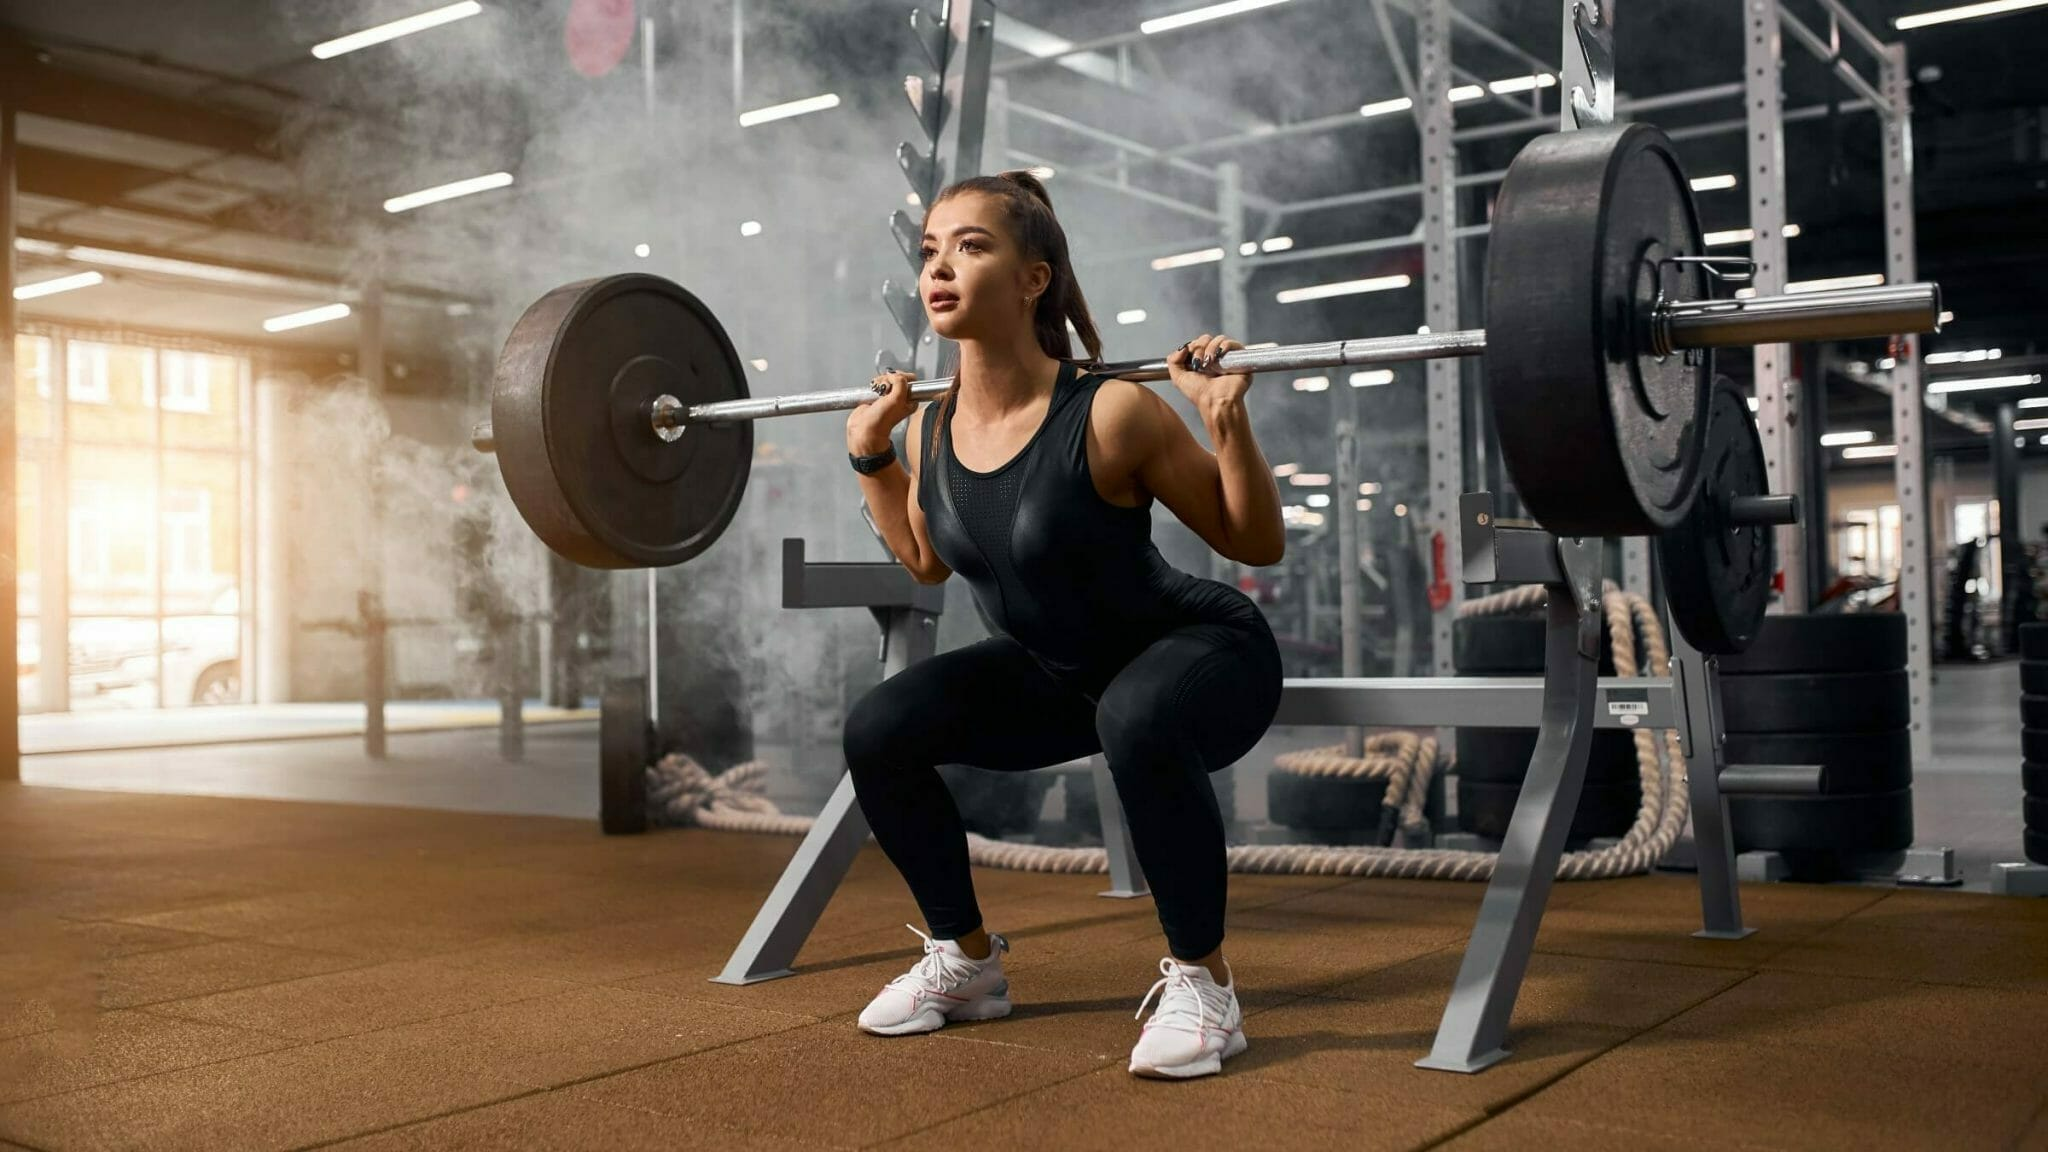 Doing squats with white women's weightlifting shoes and black spandex gear.